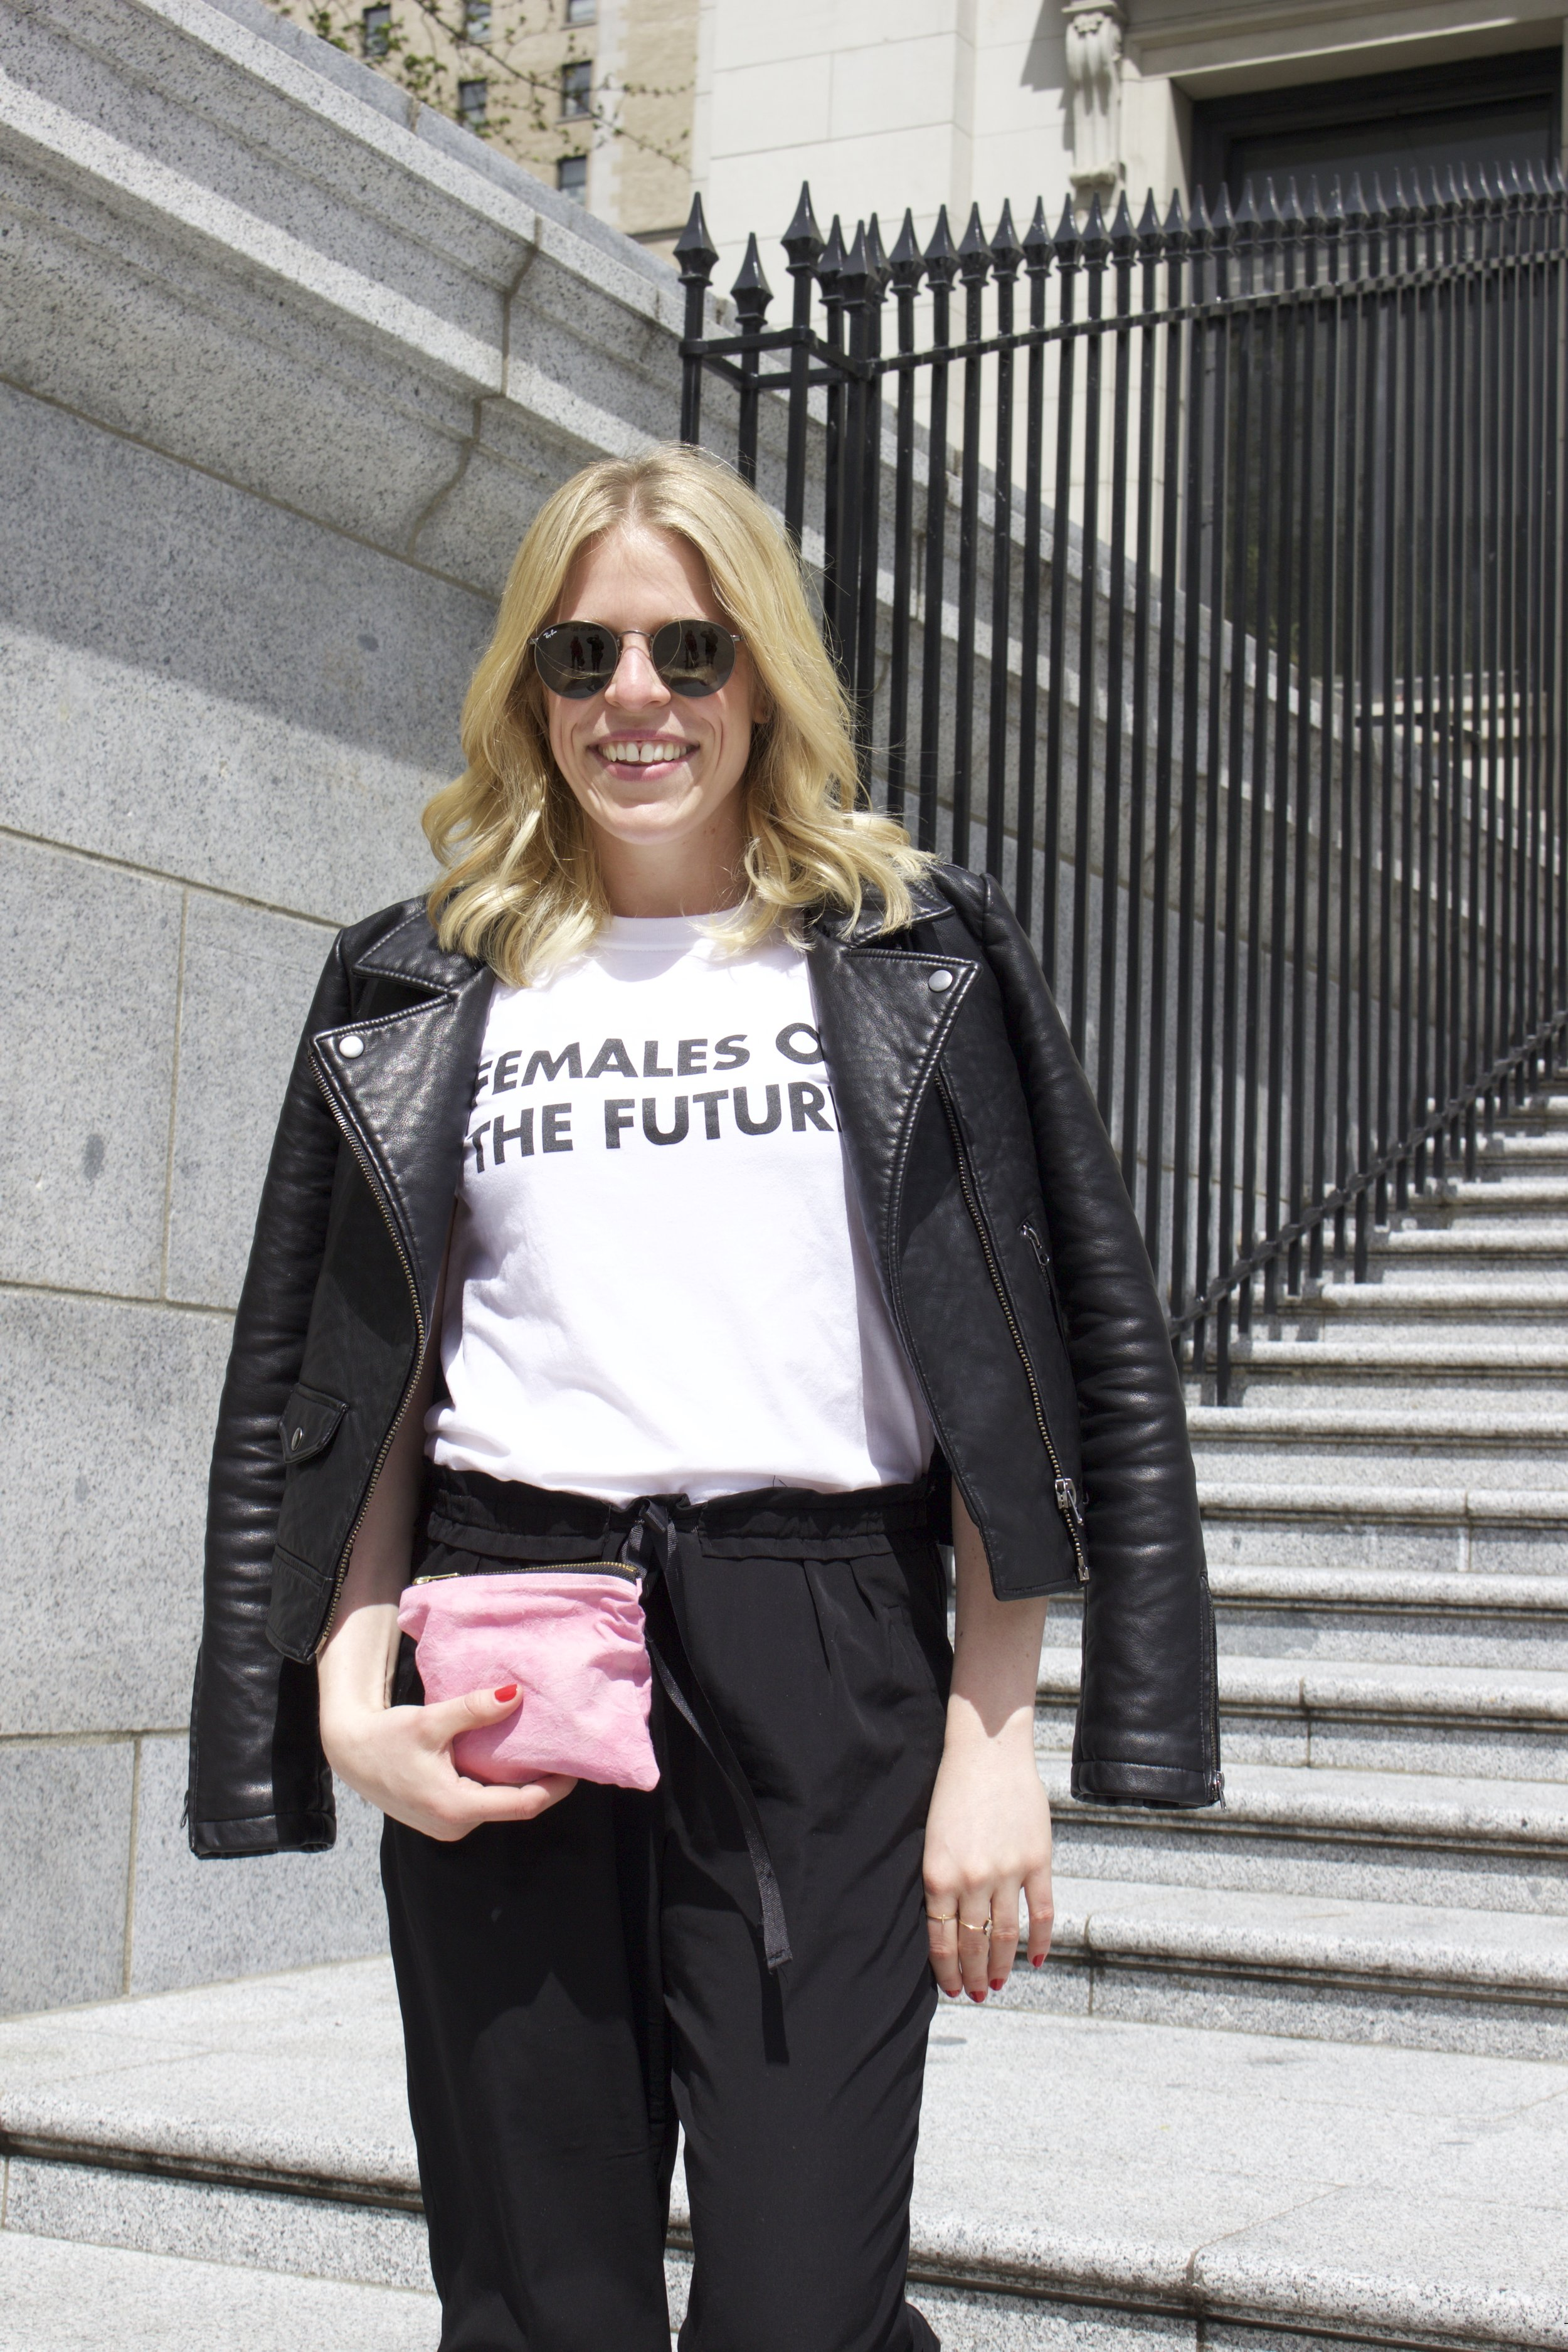 Topshop  Leather Jacket,  Topshop ' Females of the Future' Tee,  Zara  Paper Bag Trousers,  Dani Bartlett  'Girl U Want' Pouch,  Ray Ban  Sunglasses,  Catbird  Rings,  Little Gold  Ring,  Cupcakes and Cashmere  x Formula X Haute Sauce Nail Polish